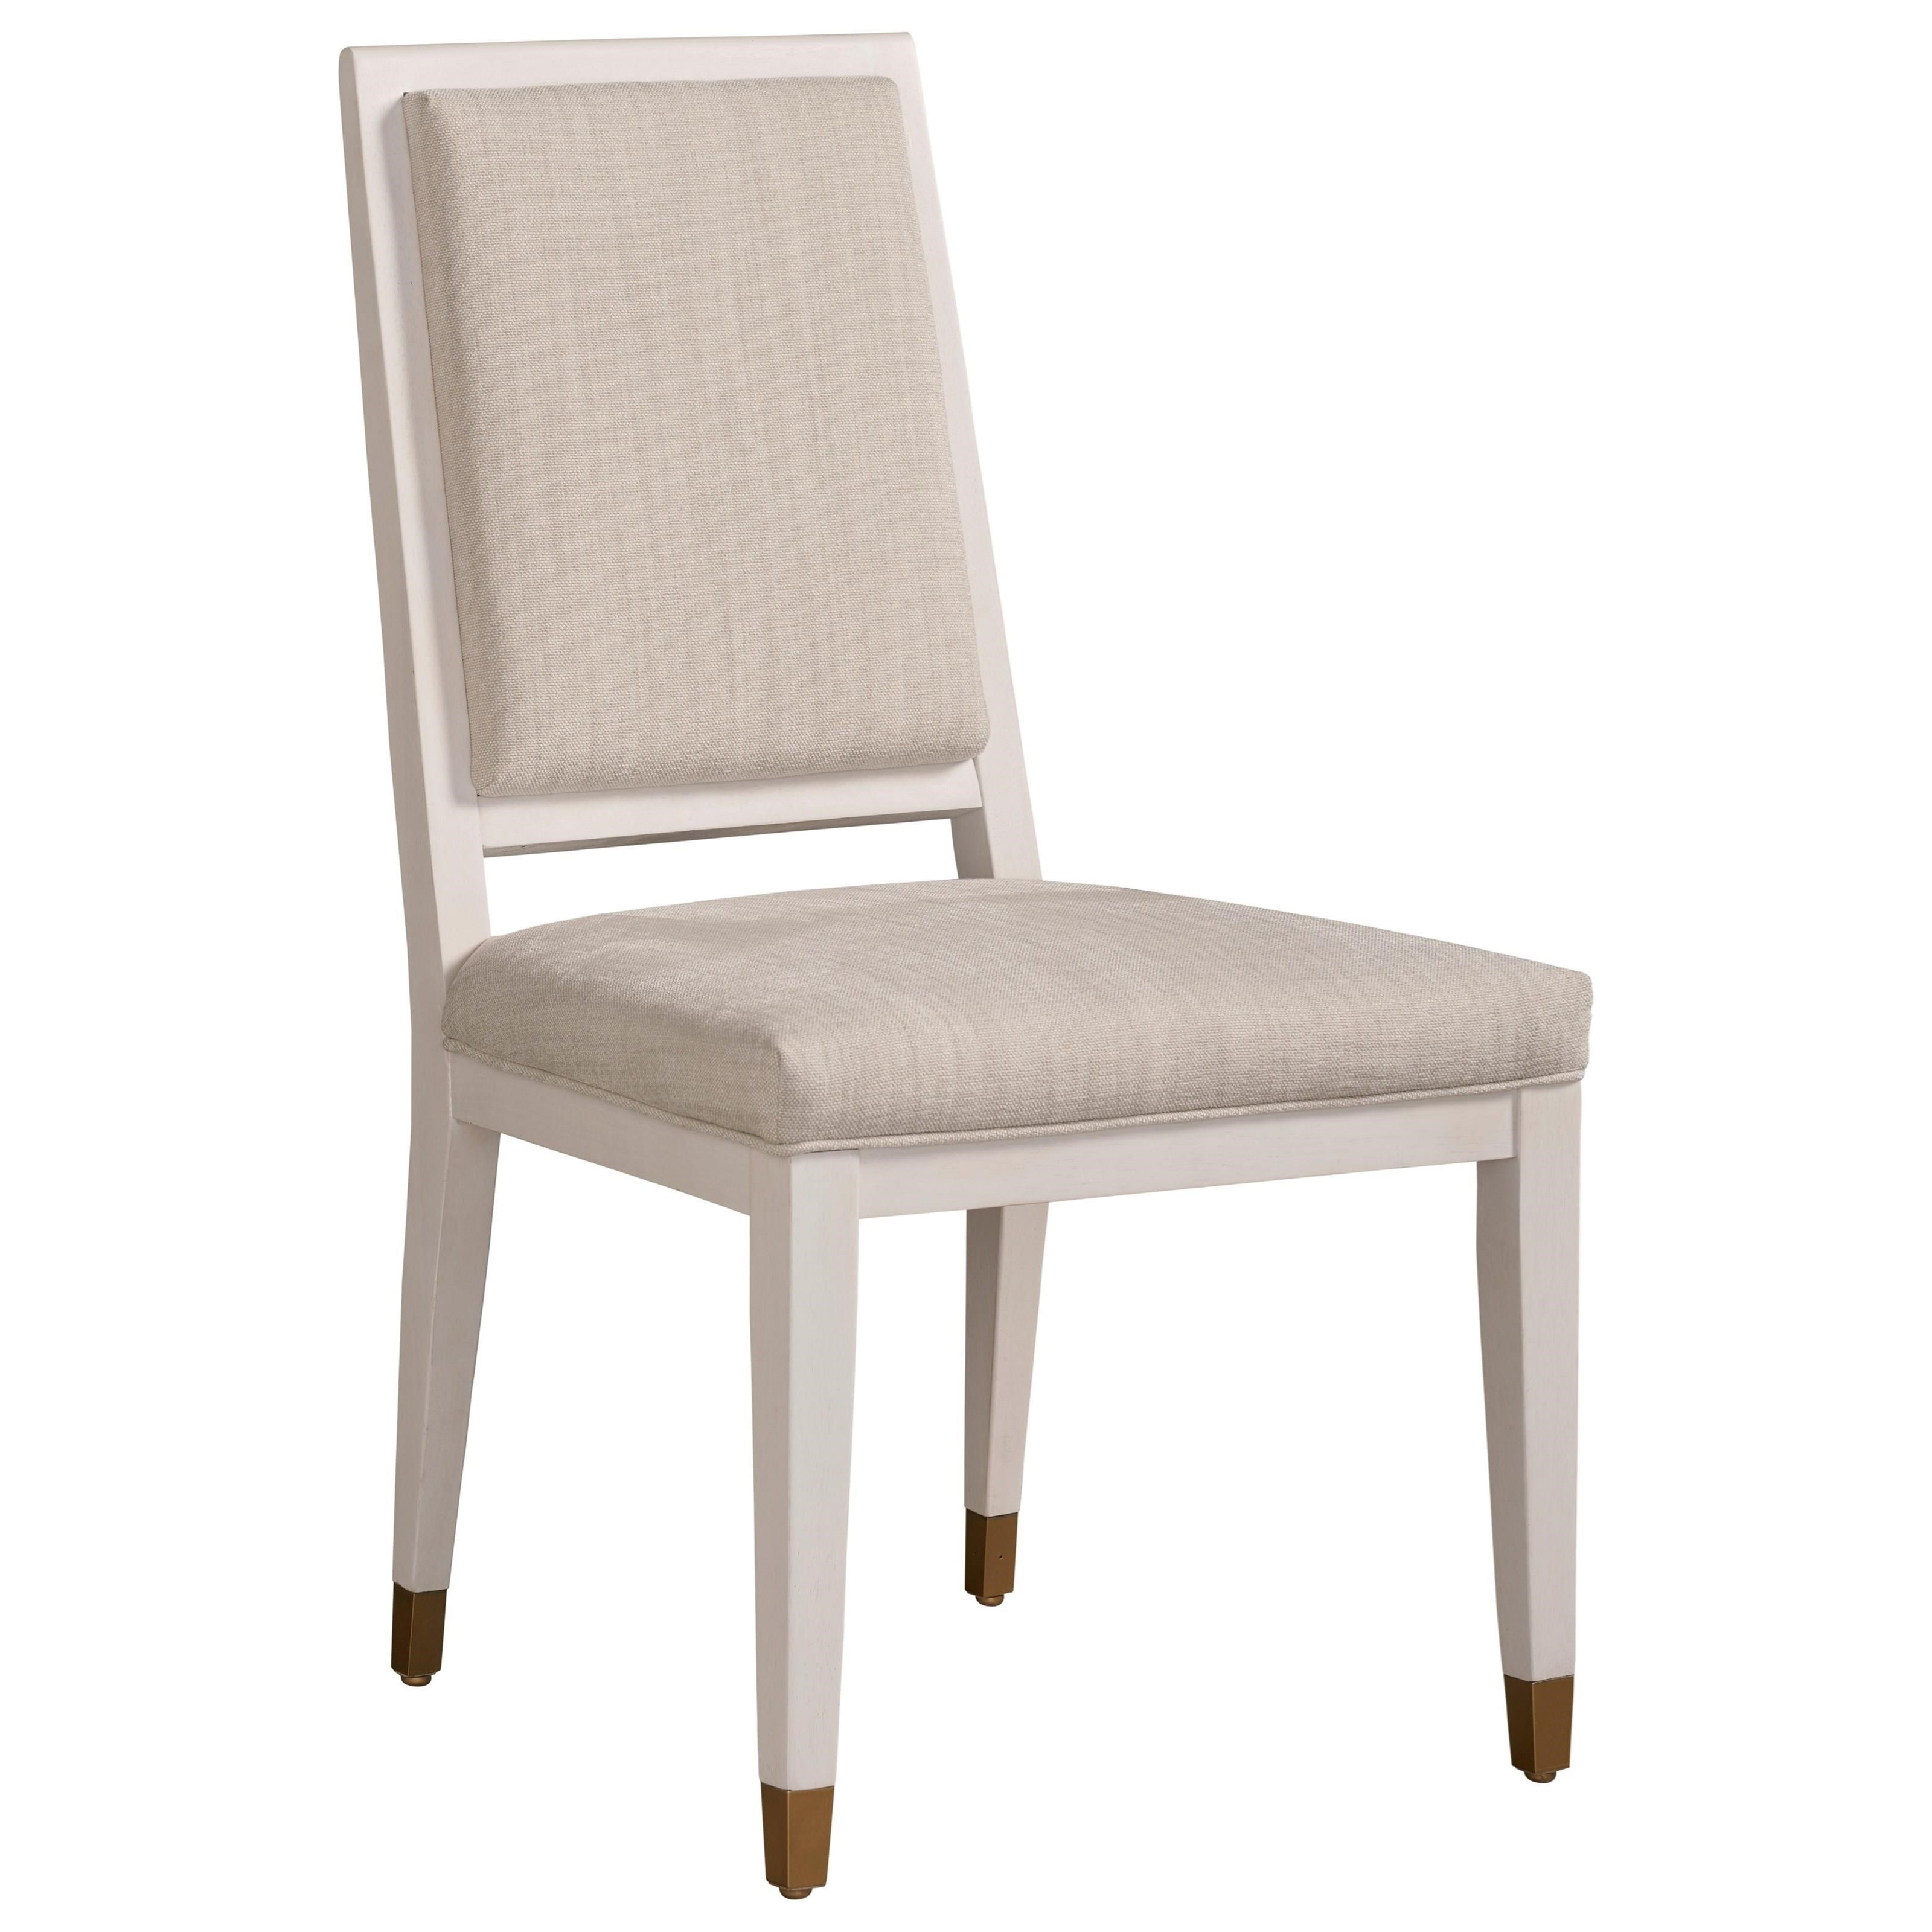 Love. Joy. Bliss.-Miranda Kerr Home Side Chair by Universal at Nassau Furniture and Mattress